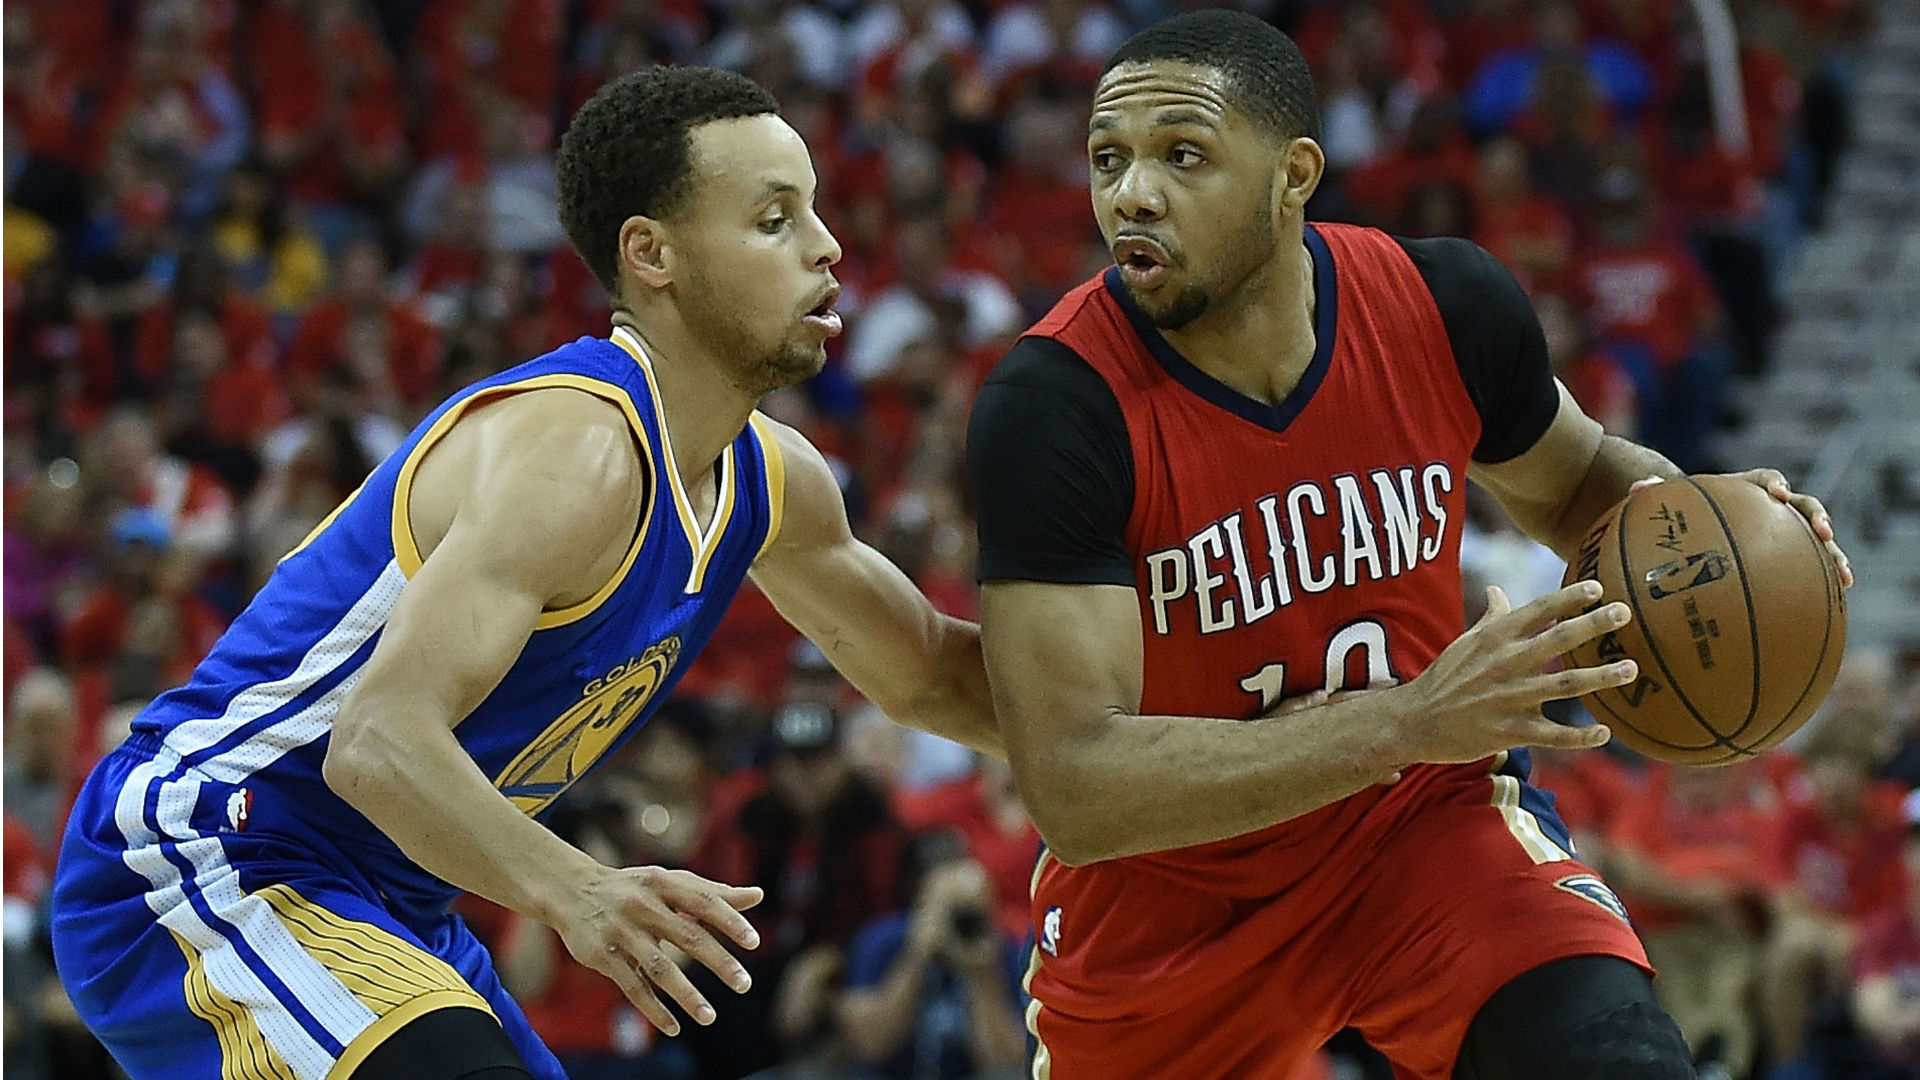 NBA Playoffs lines and picks - Warriors look for to sweep, Blazers in desperation spot in late Saturday games